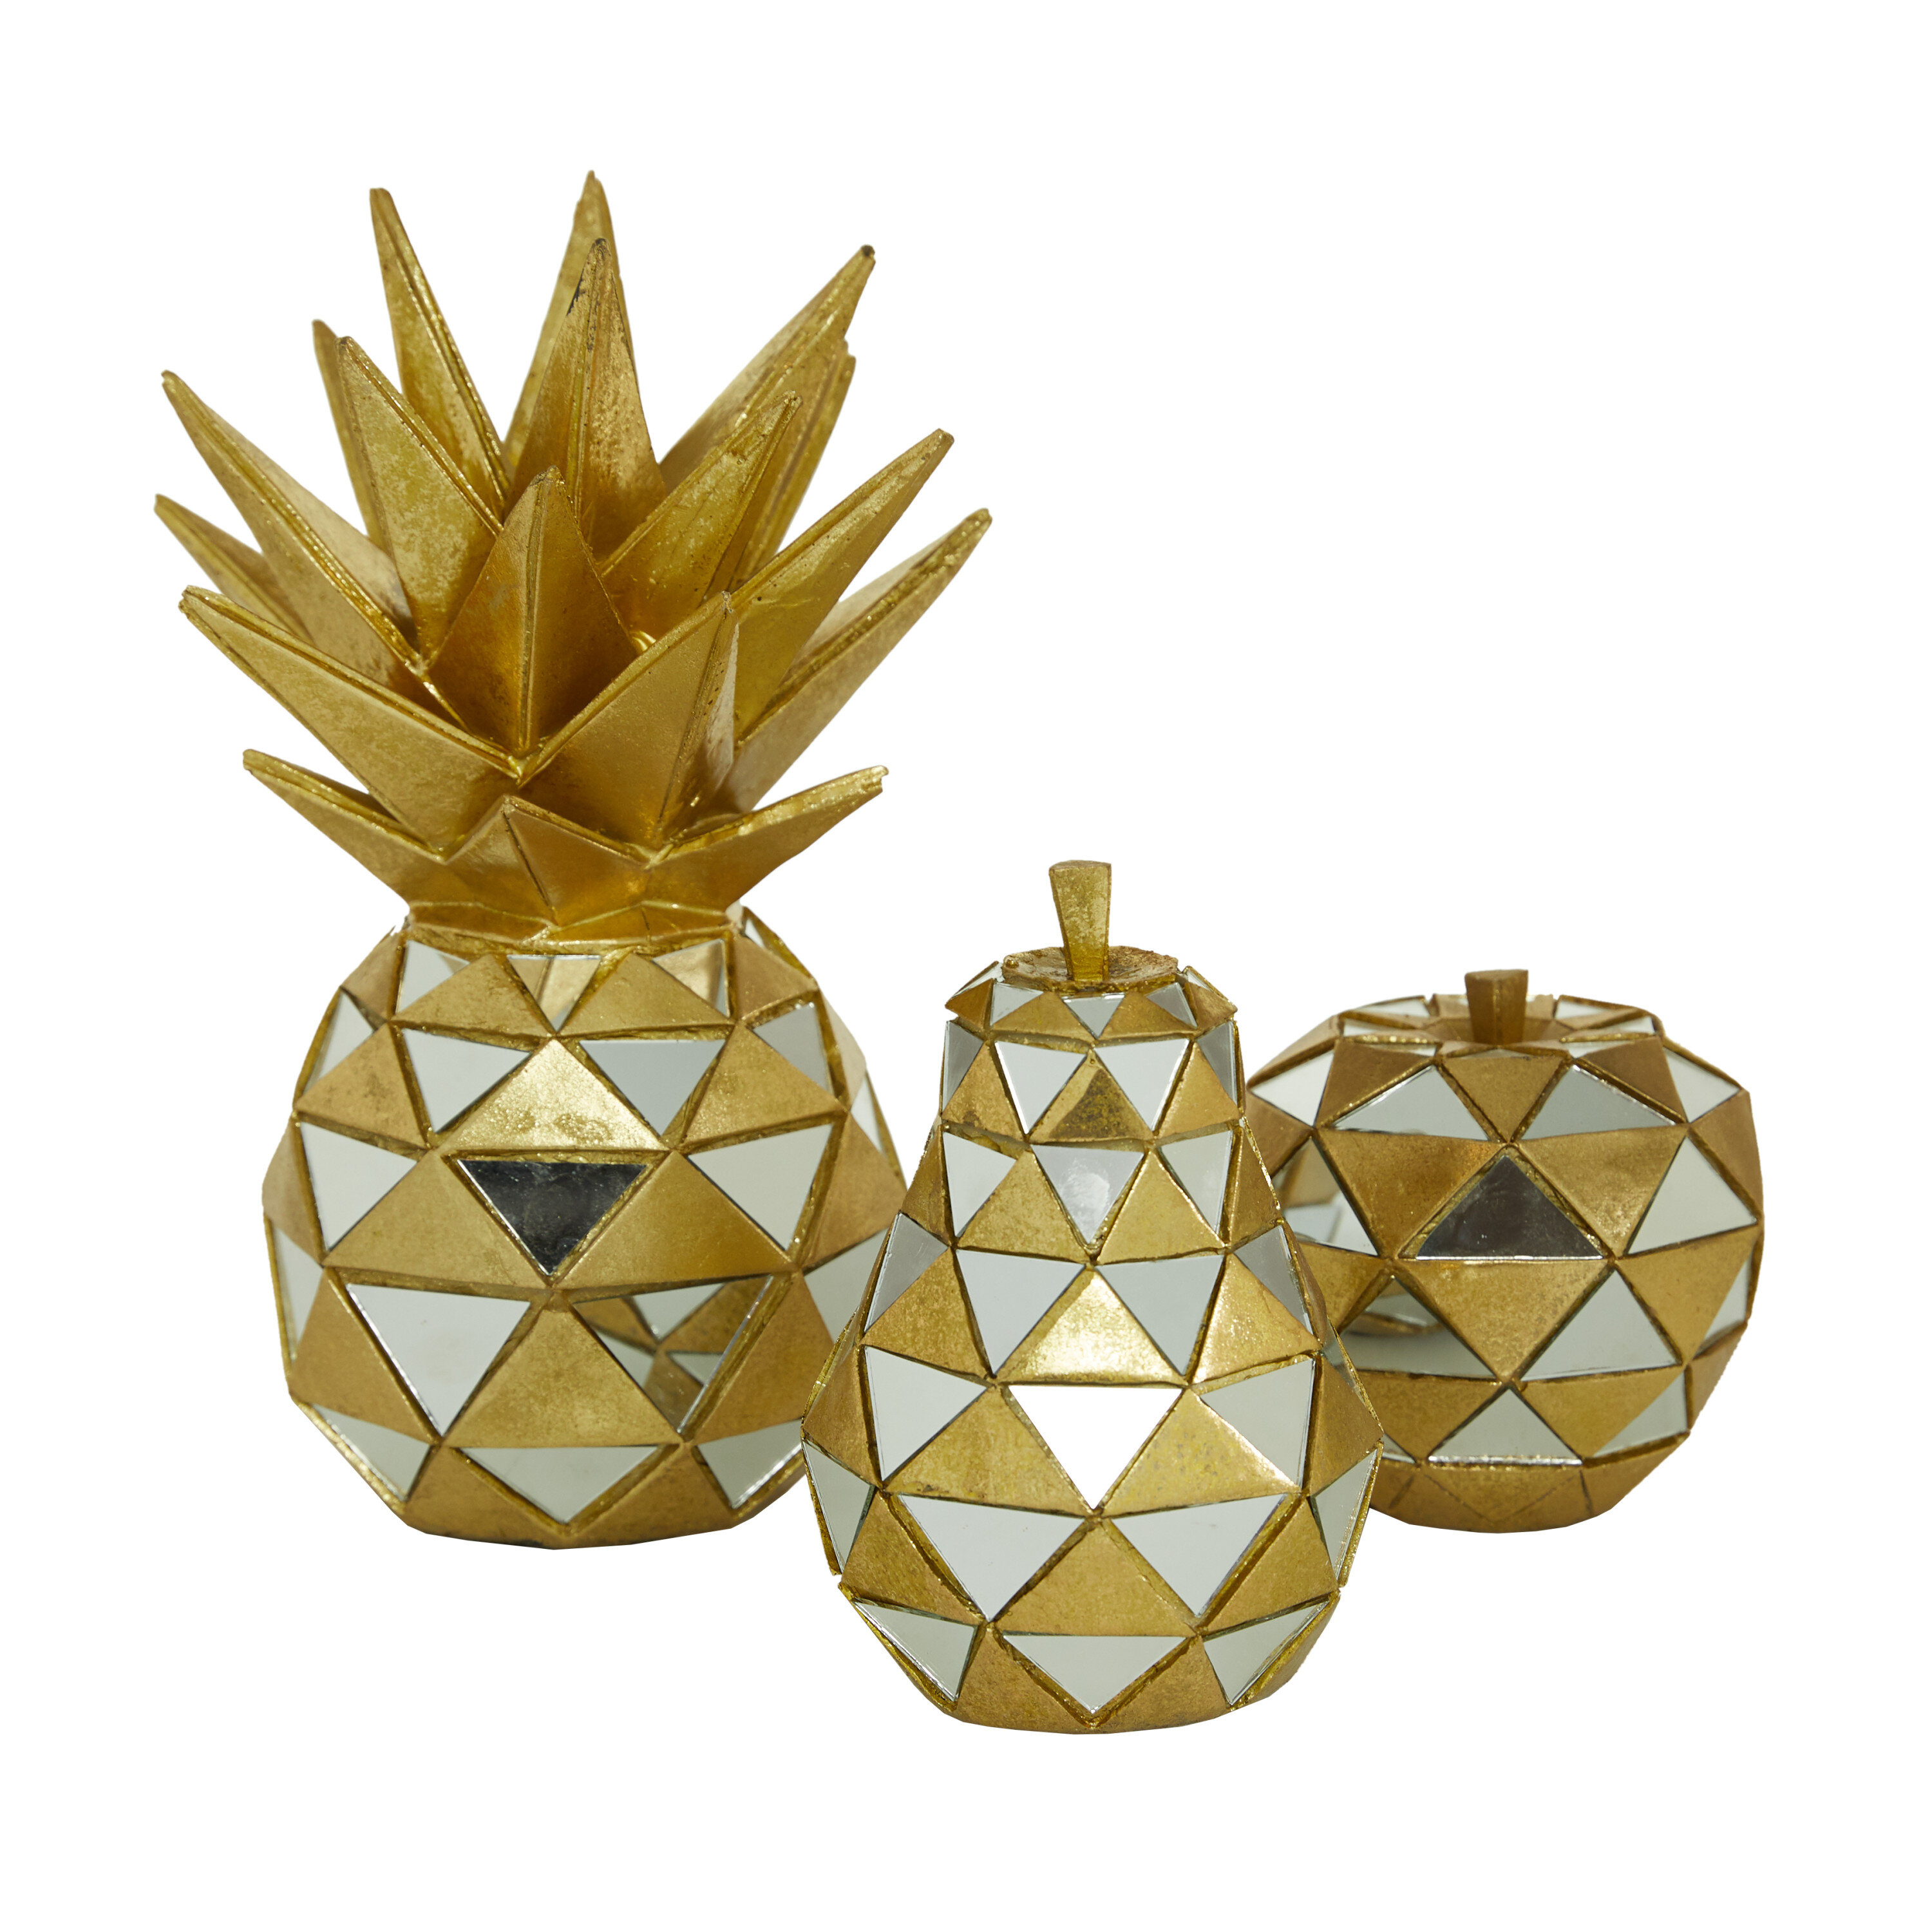 Mixed Fruit Decorative Objects You Ll Love In 2021 Wayfair